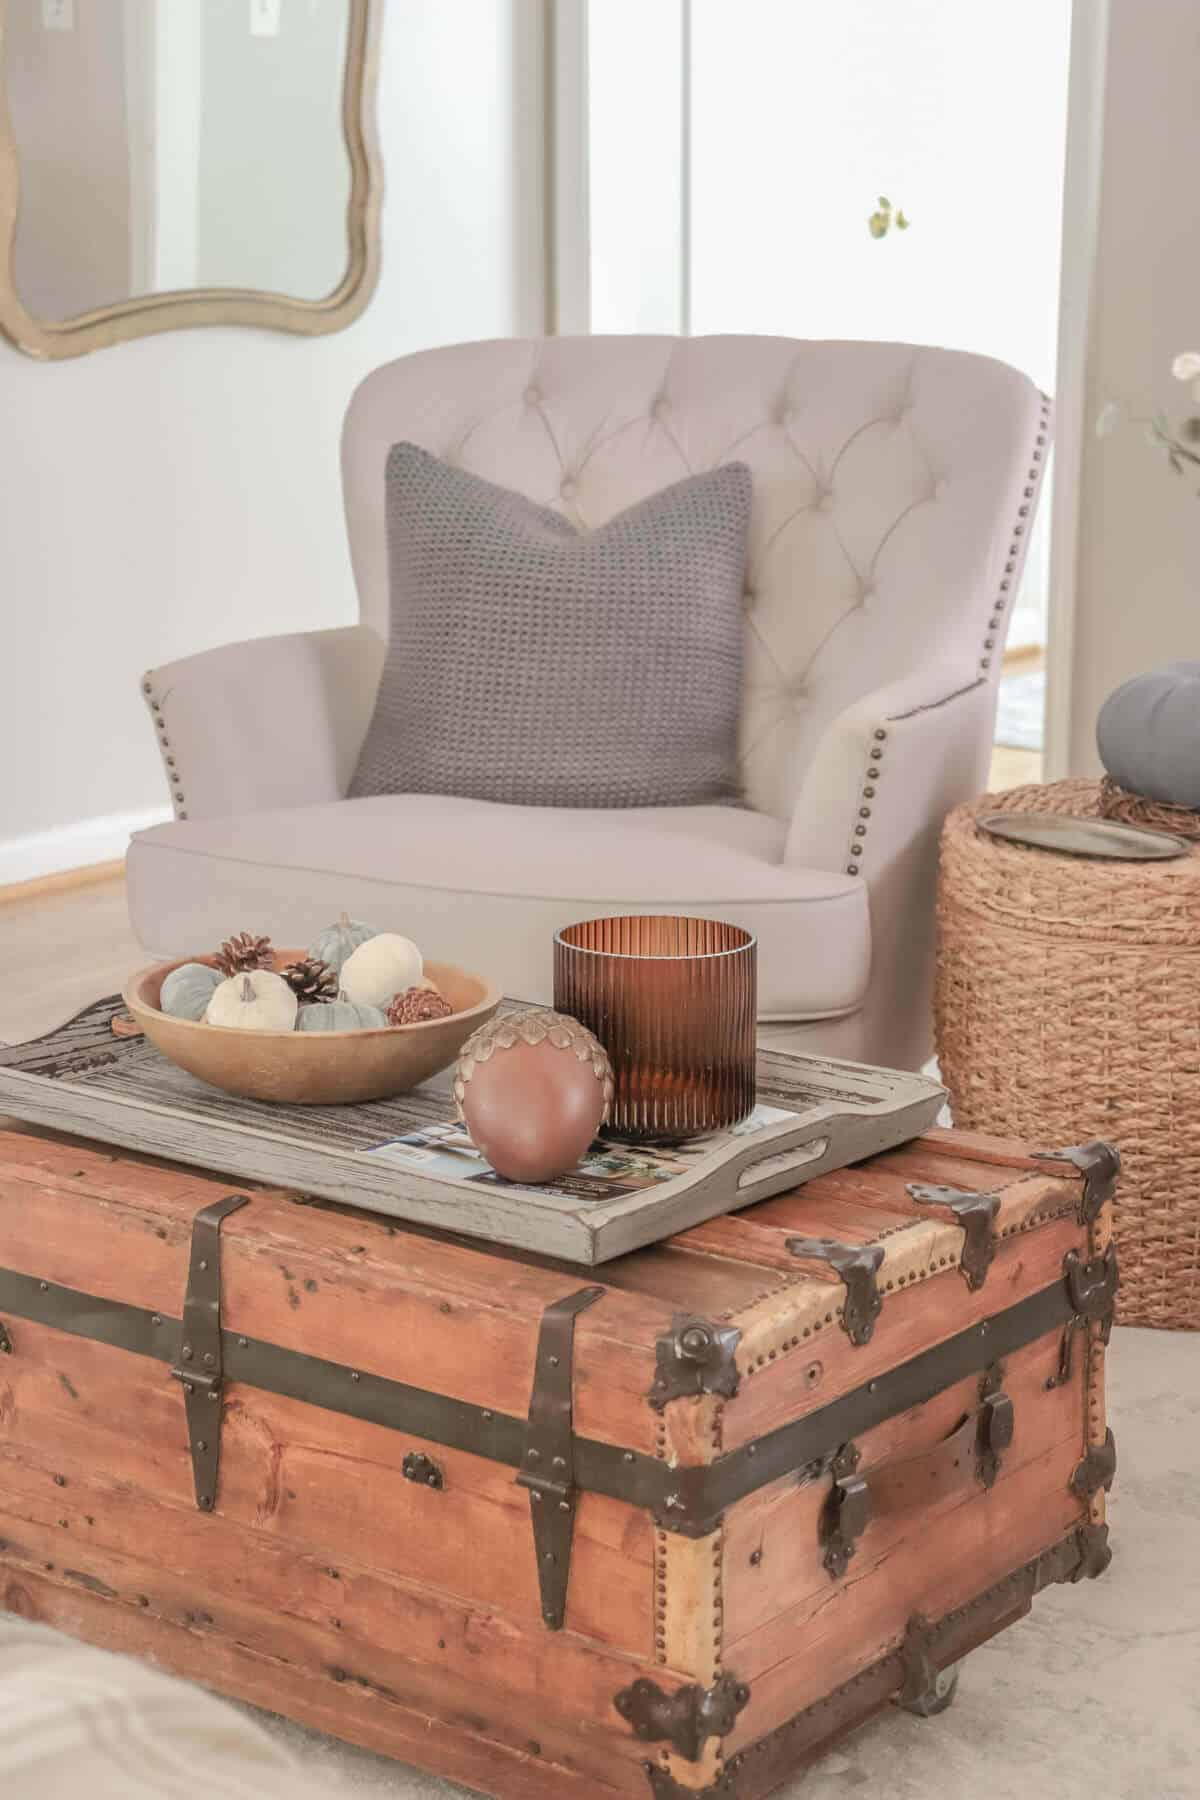 armchair with gray pillows with vintage wooden crate as a coffee table decorated for fall